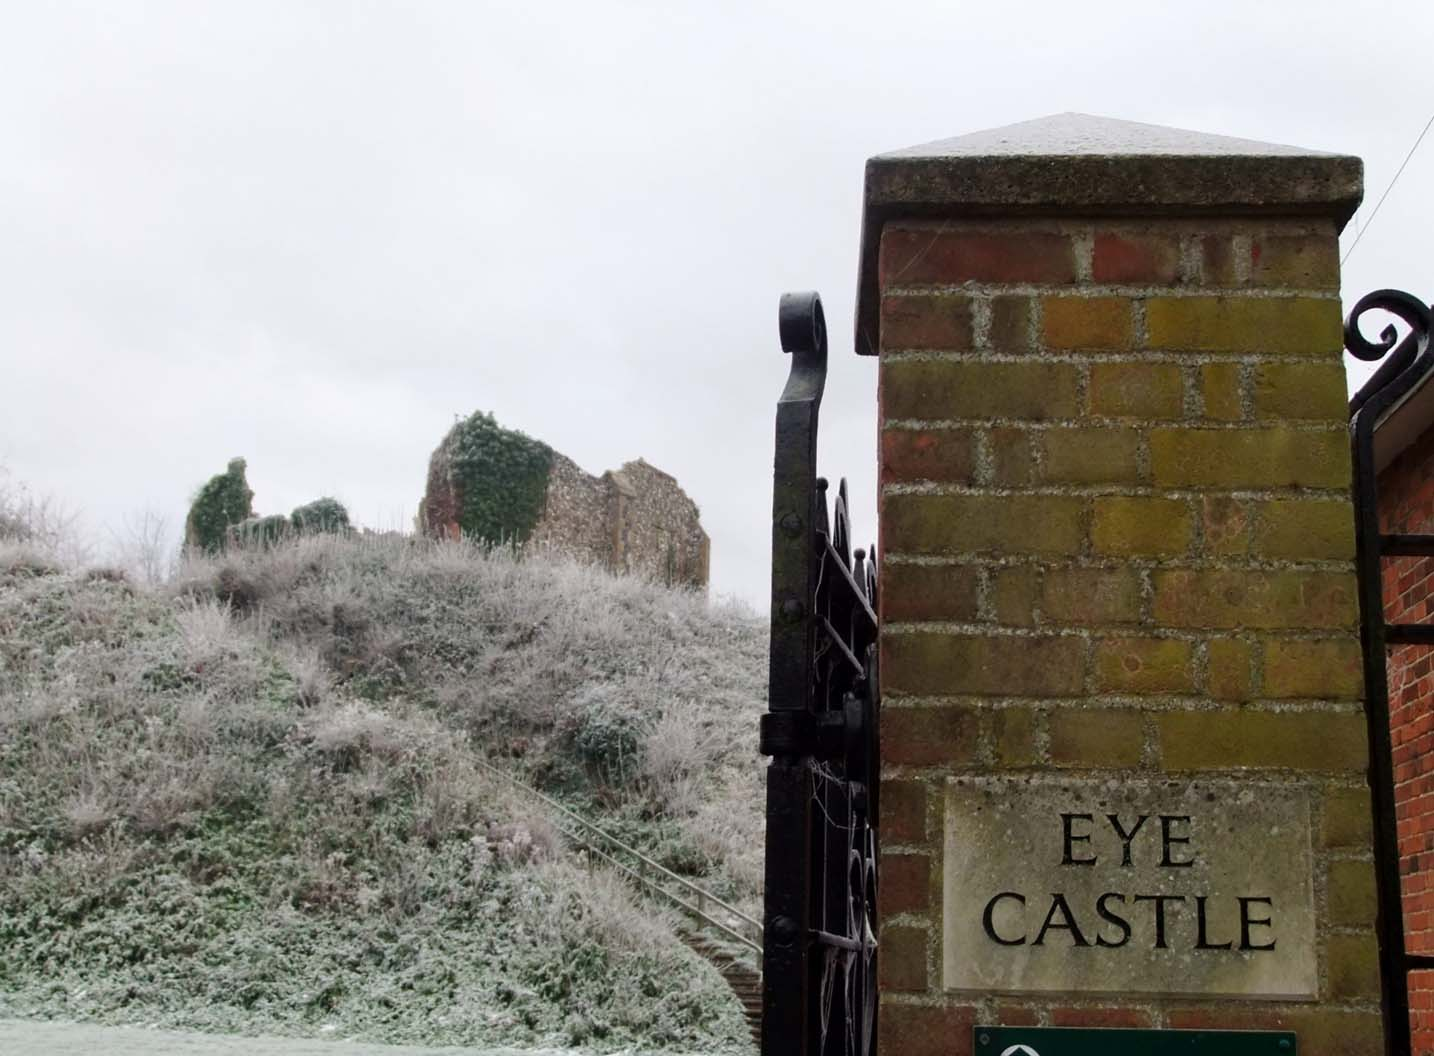 Eye Castle Suffolk with sign